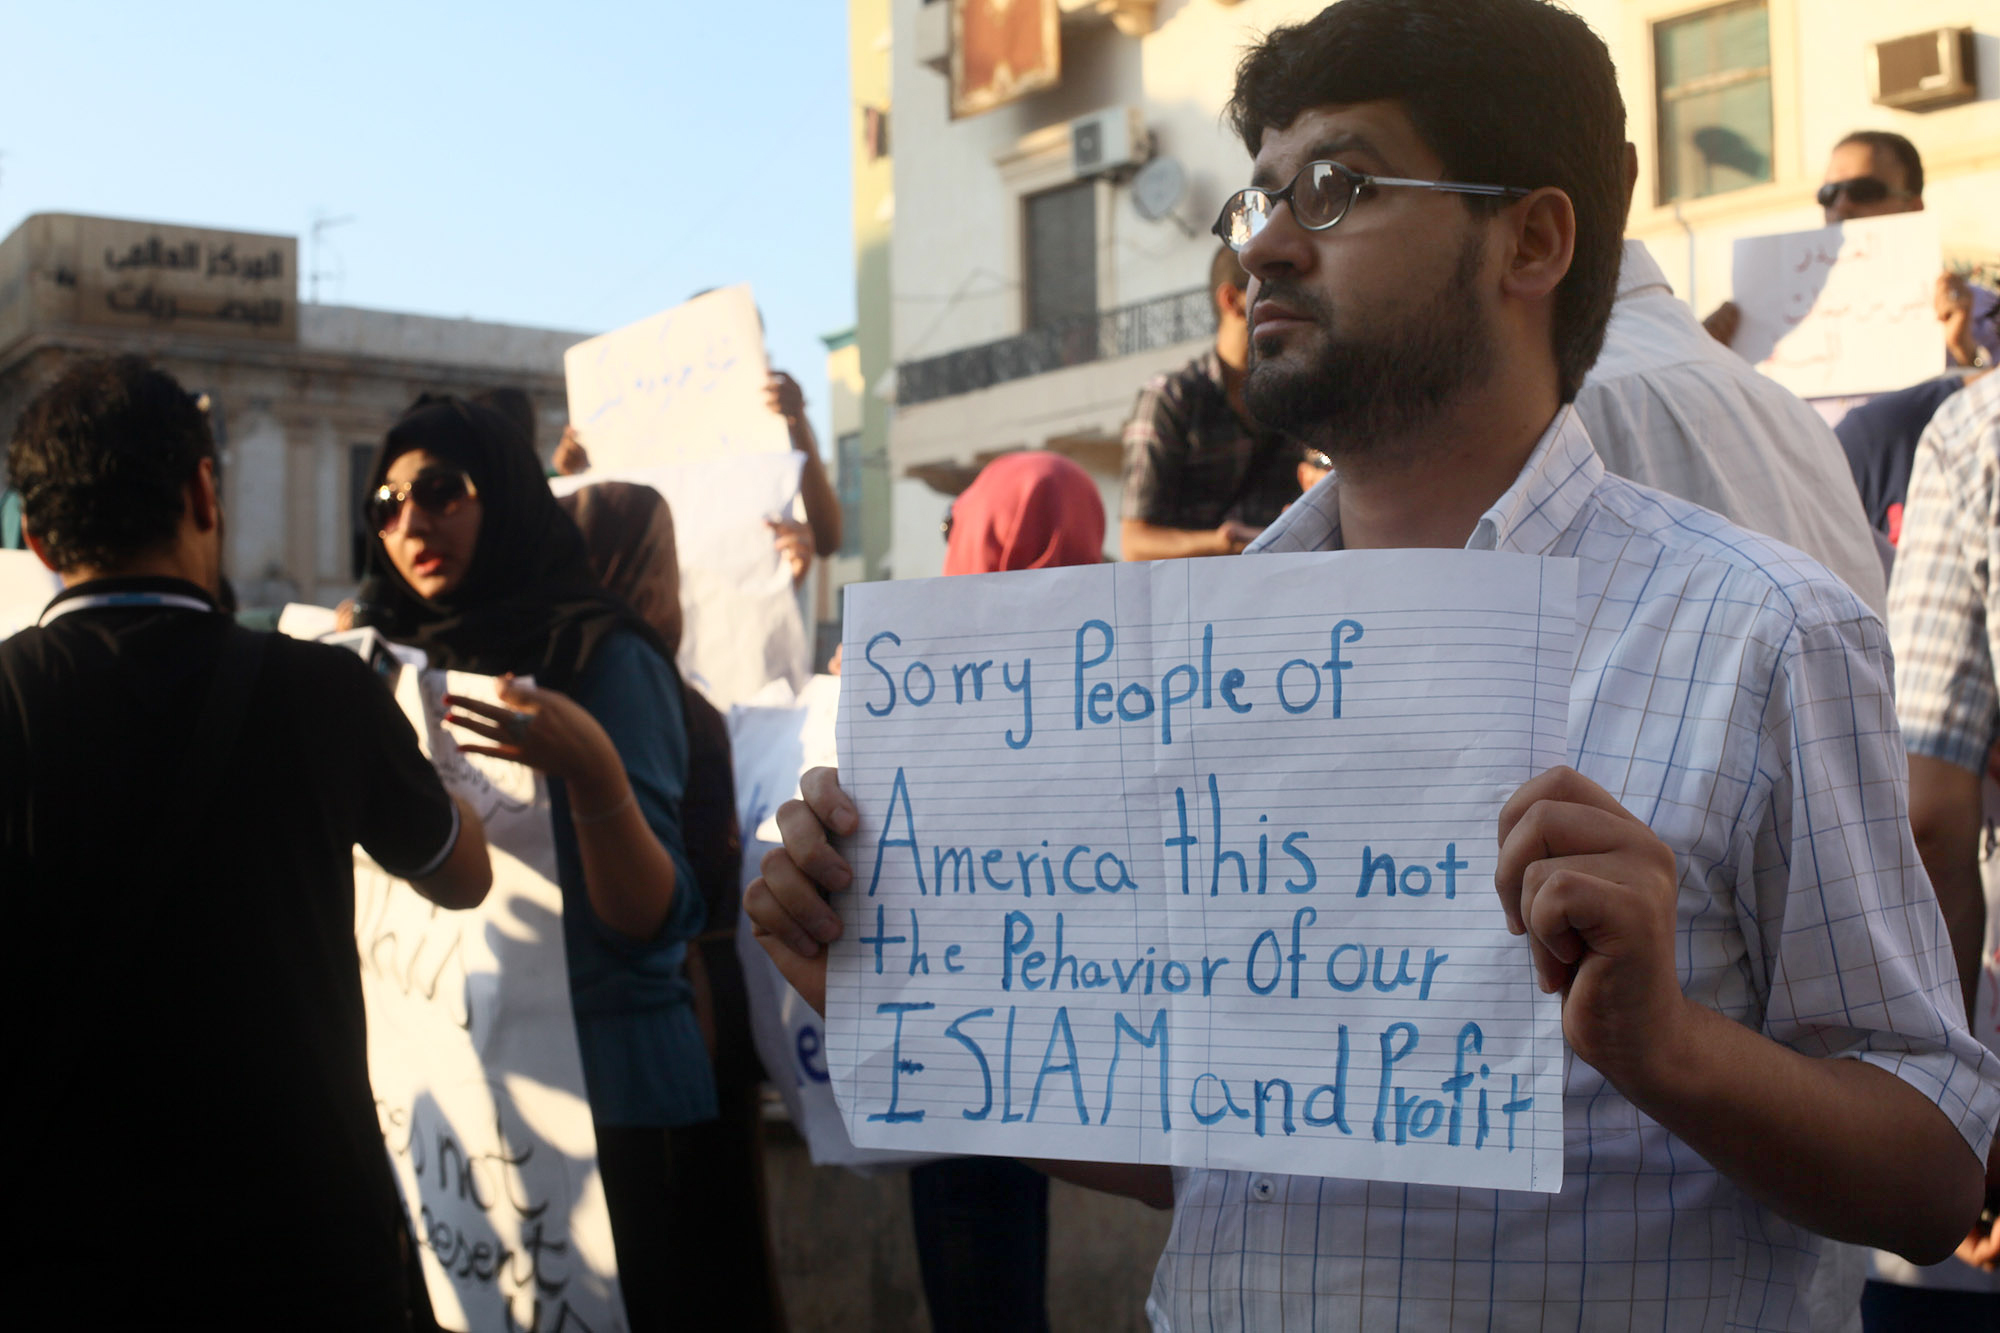 A Libyan man holds a placard in English during a demonstration Wednesday against the attack on the U.S. Consulate that killed four Americans, including the ambassador, in Benghazi, Libya. (Ibrahim Alaguri/AP)